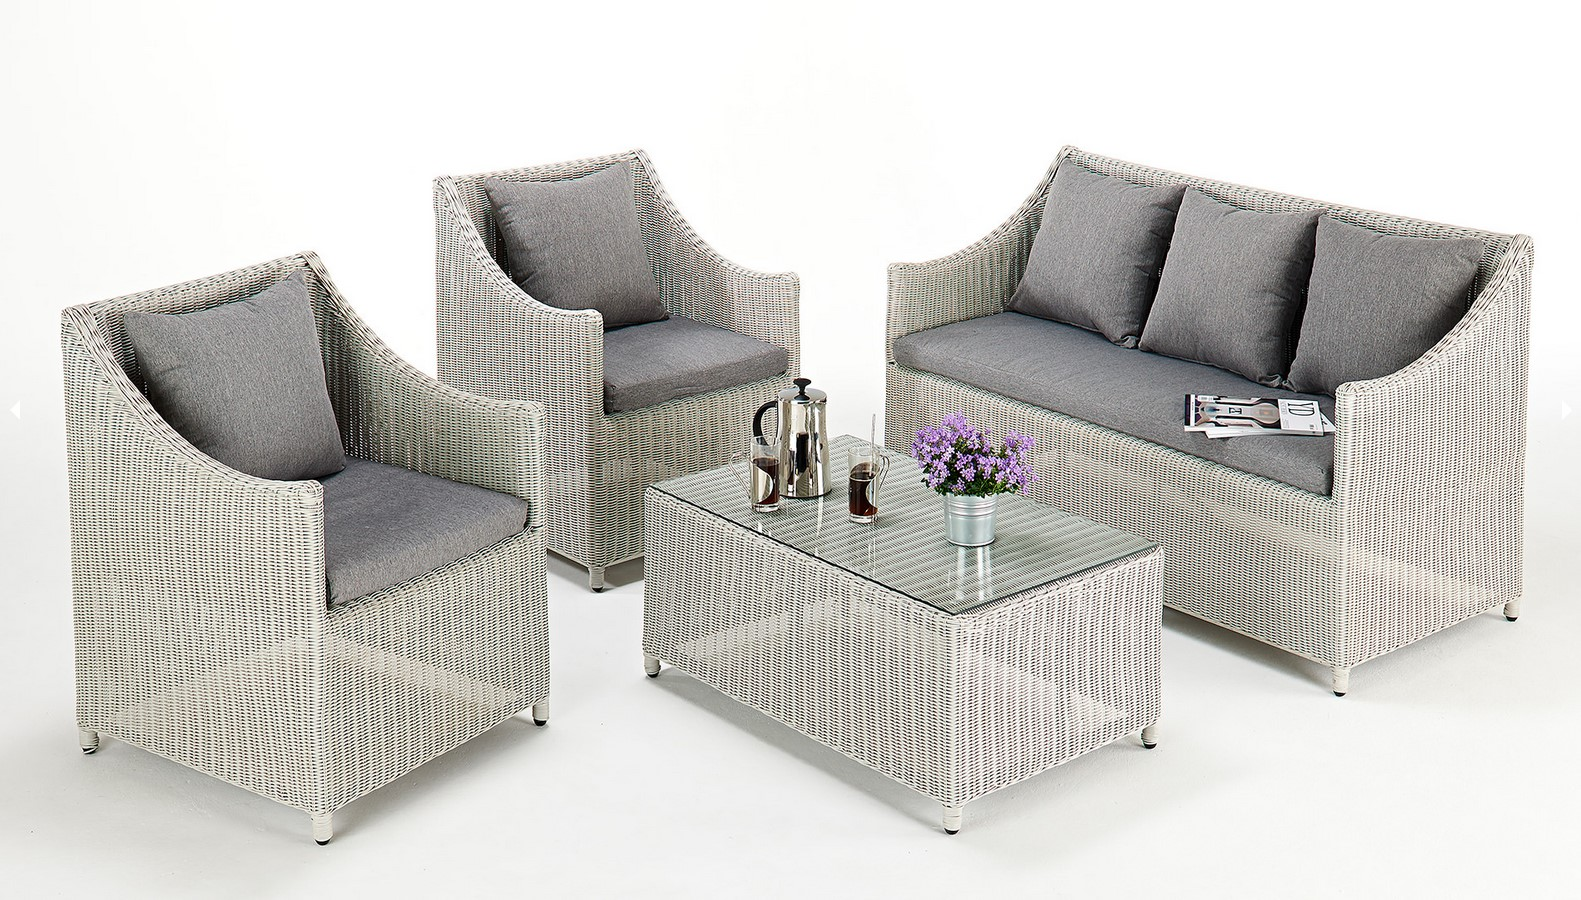 contemporary rattan sofa set wicker furniture. Black Bedroom Furniture Sets. Home Design Ideas